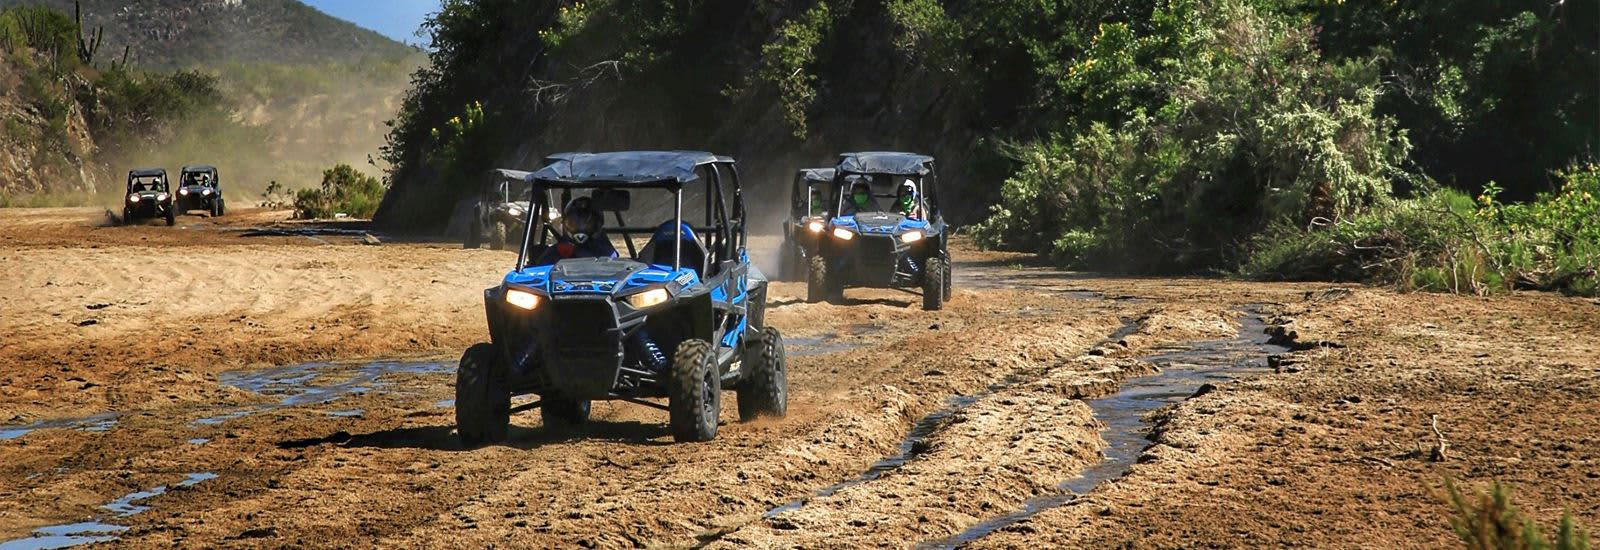 Cabo ATV Tour Off-Road Adventure